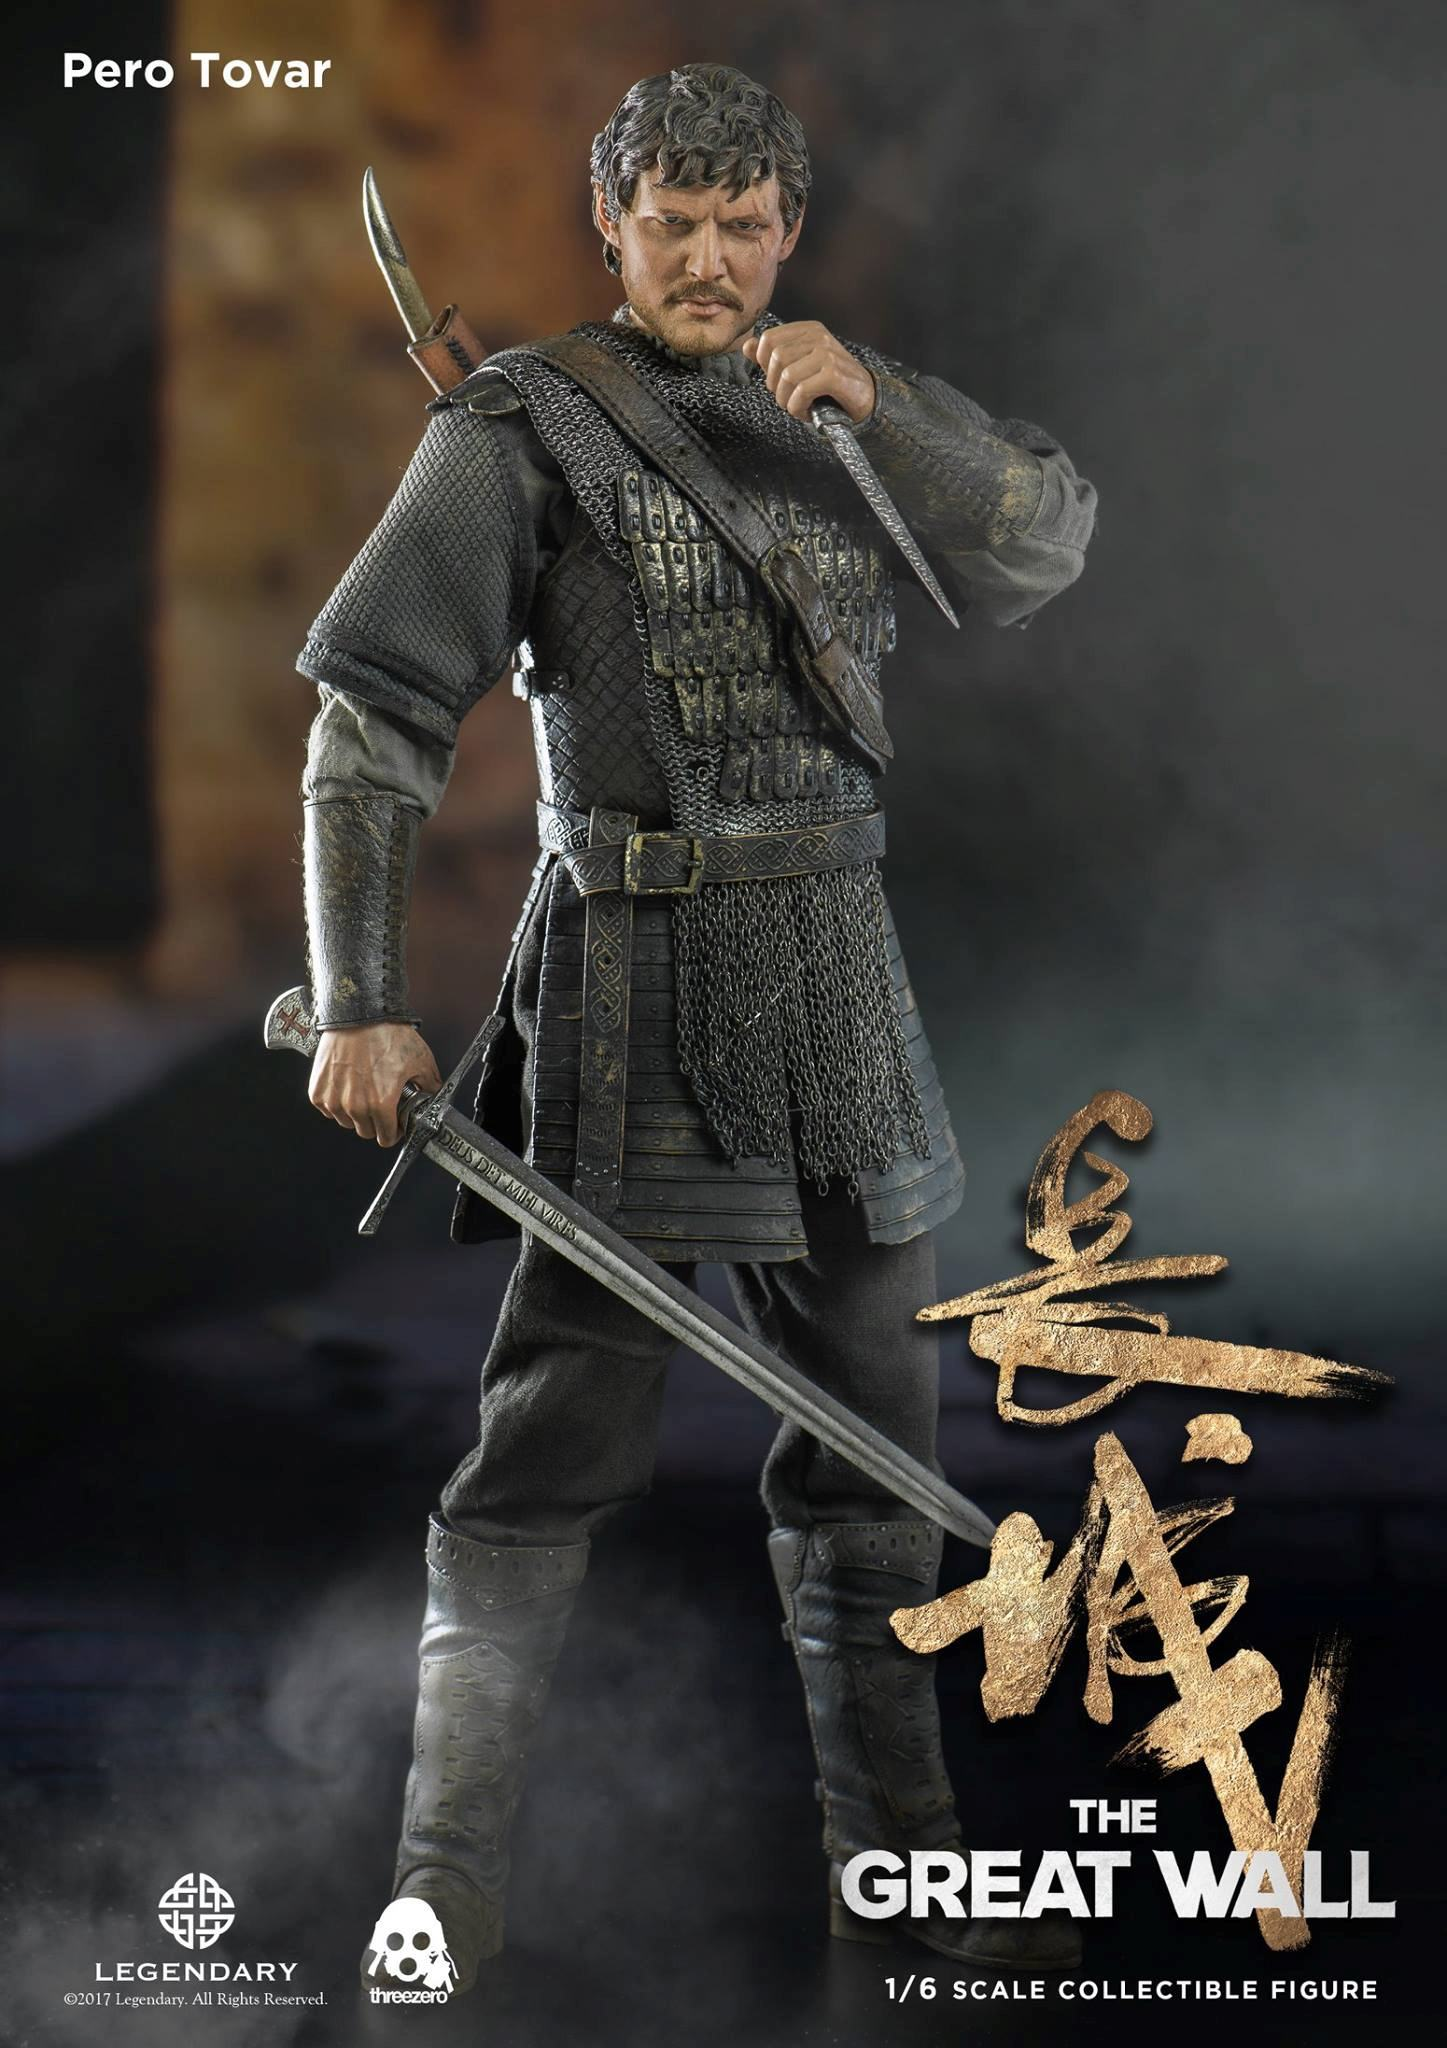 Pero-Tovar-The-Great-Wall-Action-Figure-03